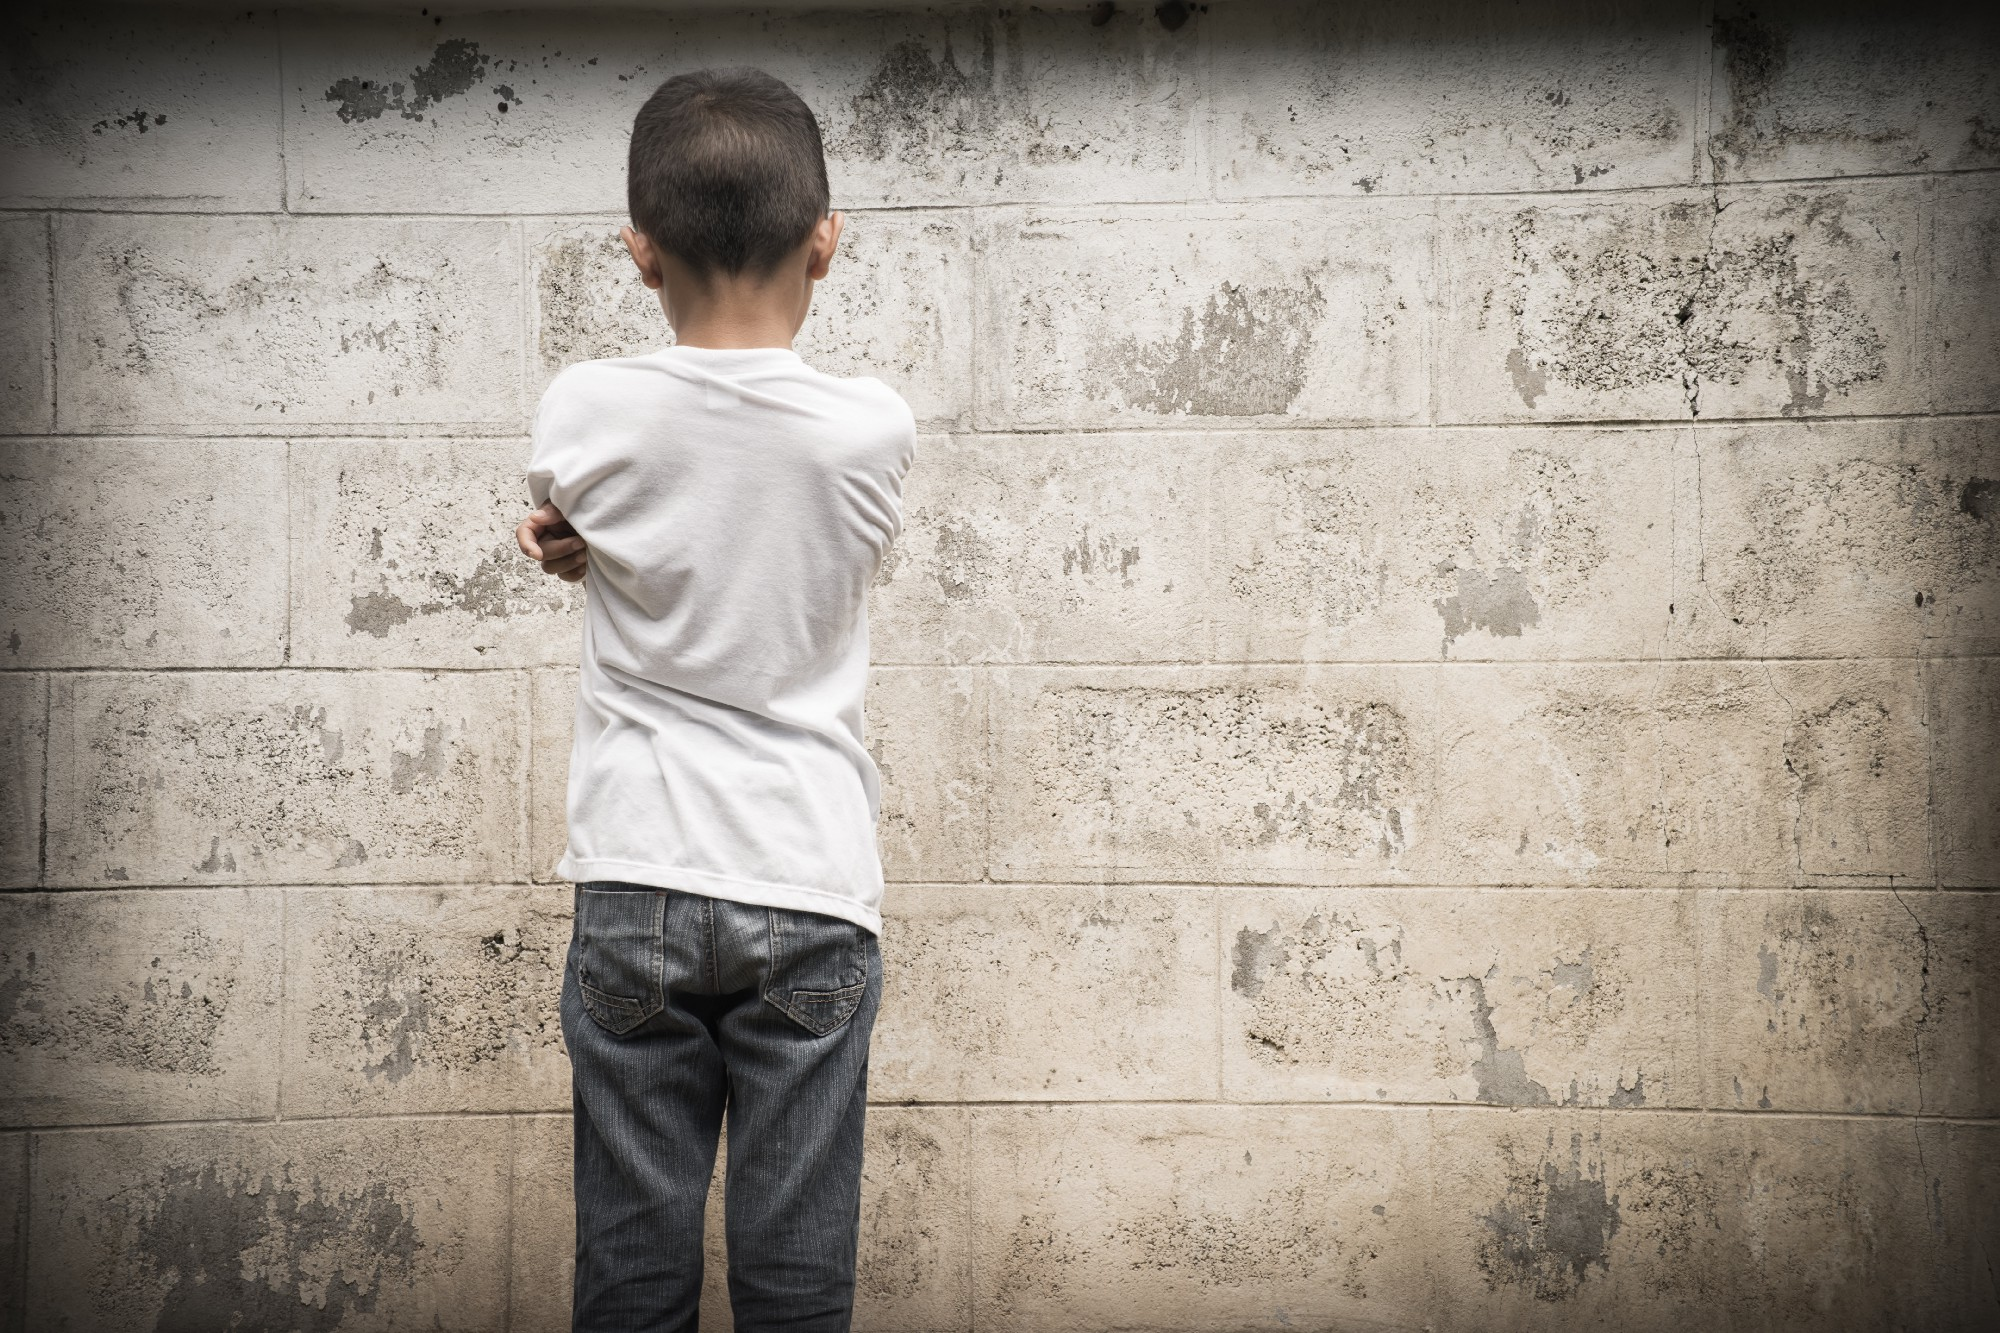 What Are The Warning Signs Of Mental Illness In Children?